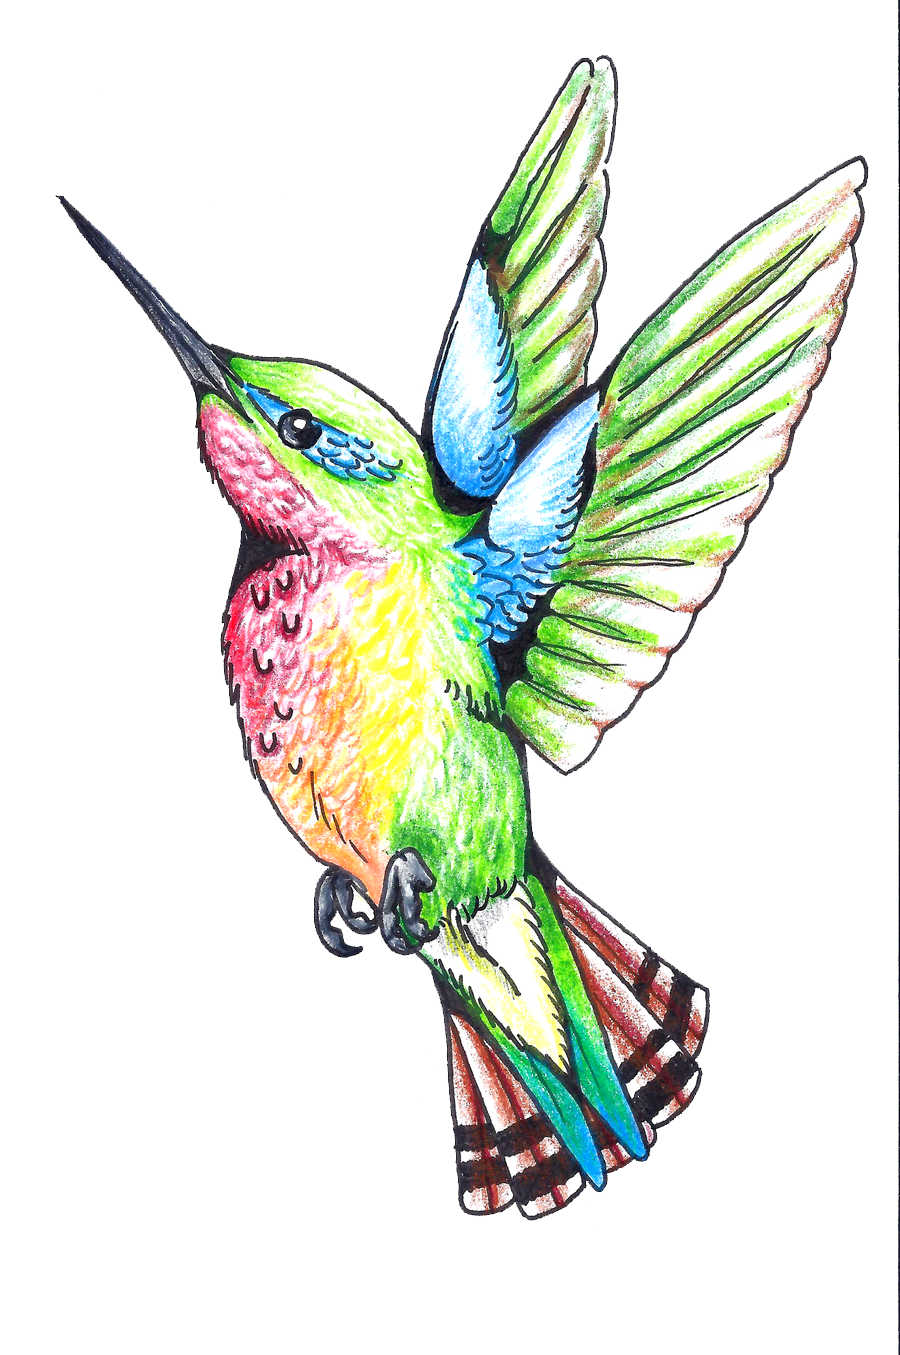 Hummingbird Tattoos Png - Download PNG image - Hummingbird Tattoos Png Clipart 445